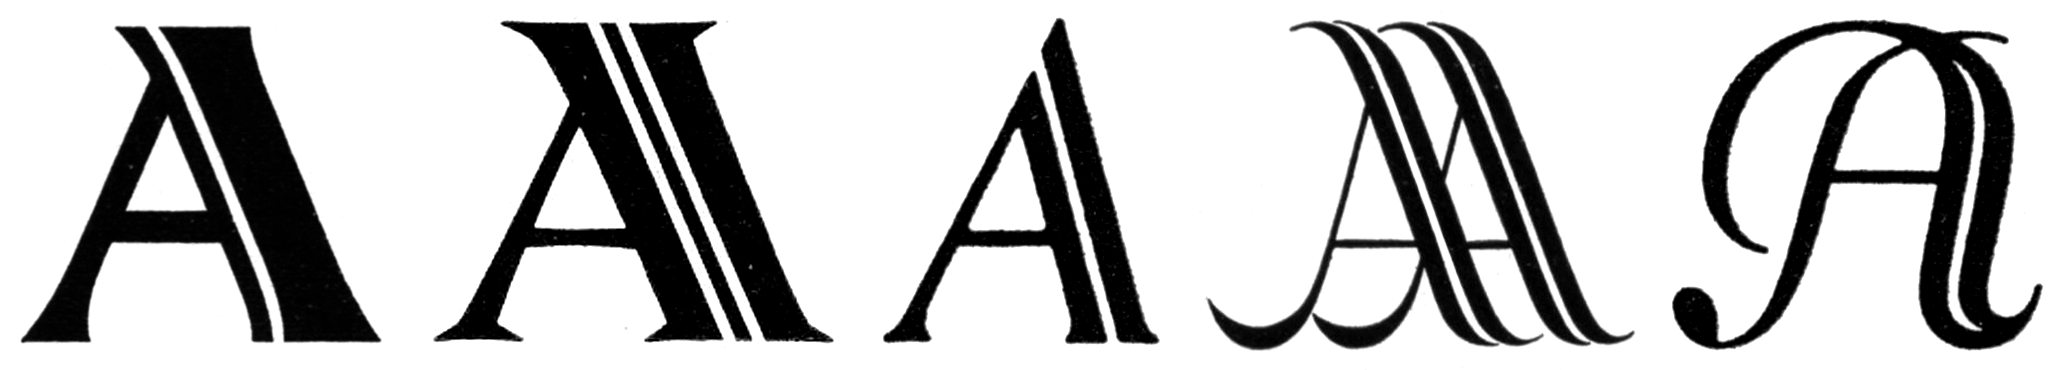 A-volution — from left to right: Atrax (1926), Metropolis licht (1928), Adastra (1928), Advertising Arts logo (1930), Schwung-Adastra (1931)